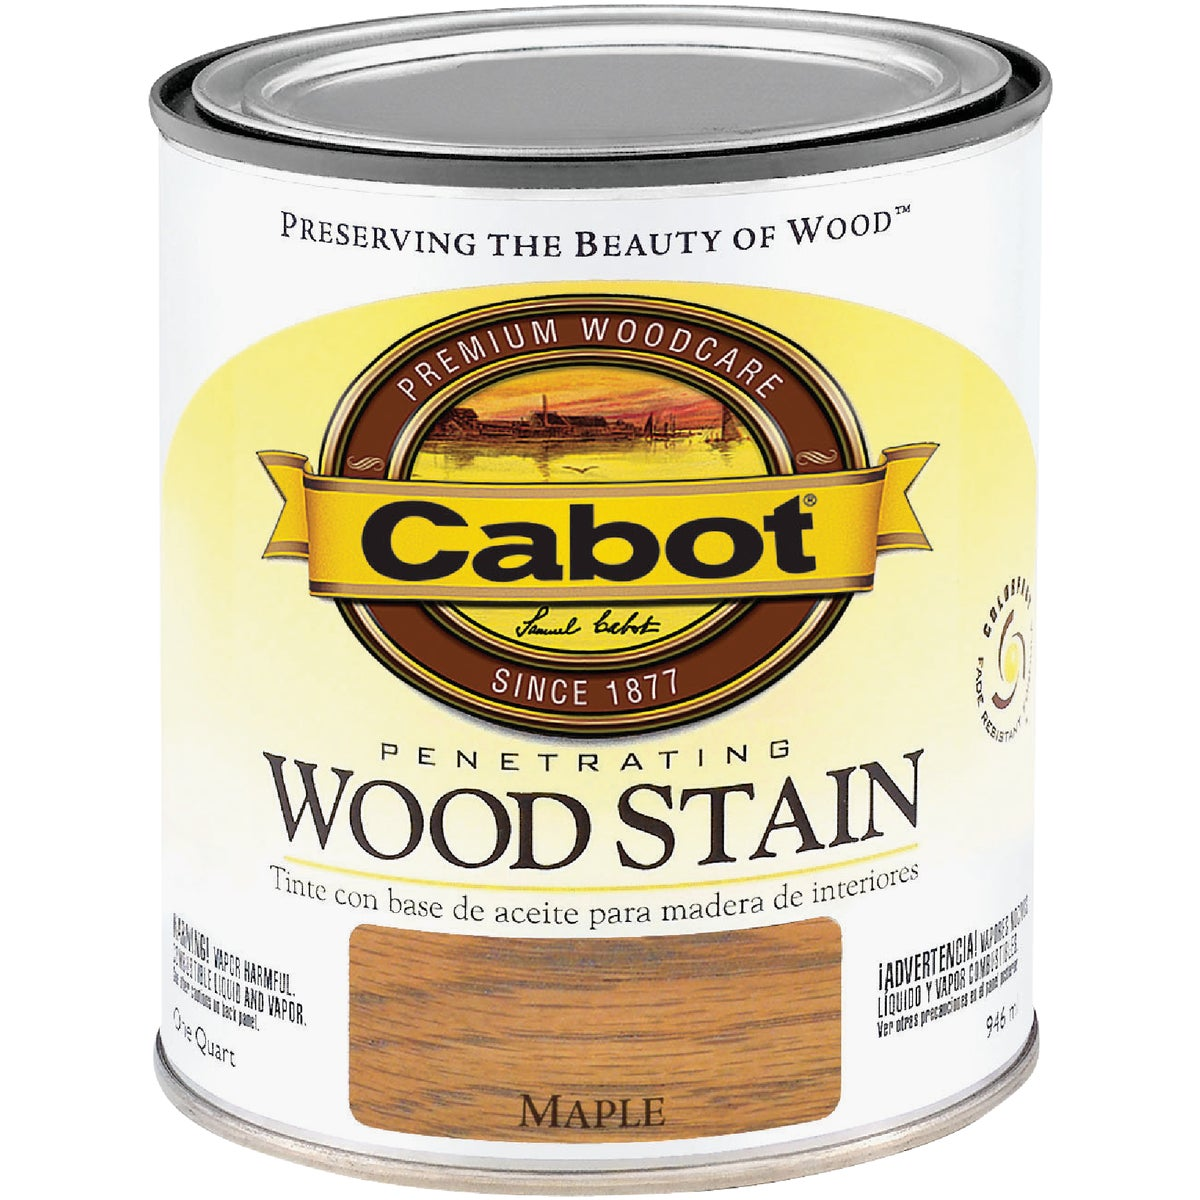 INT MAPLE WOOD STAIN - 144.0008138.005 by Valspar Corp